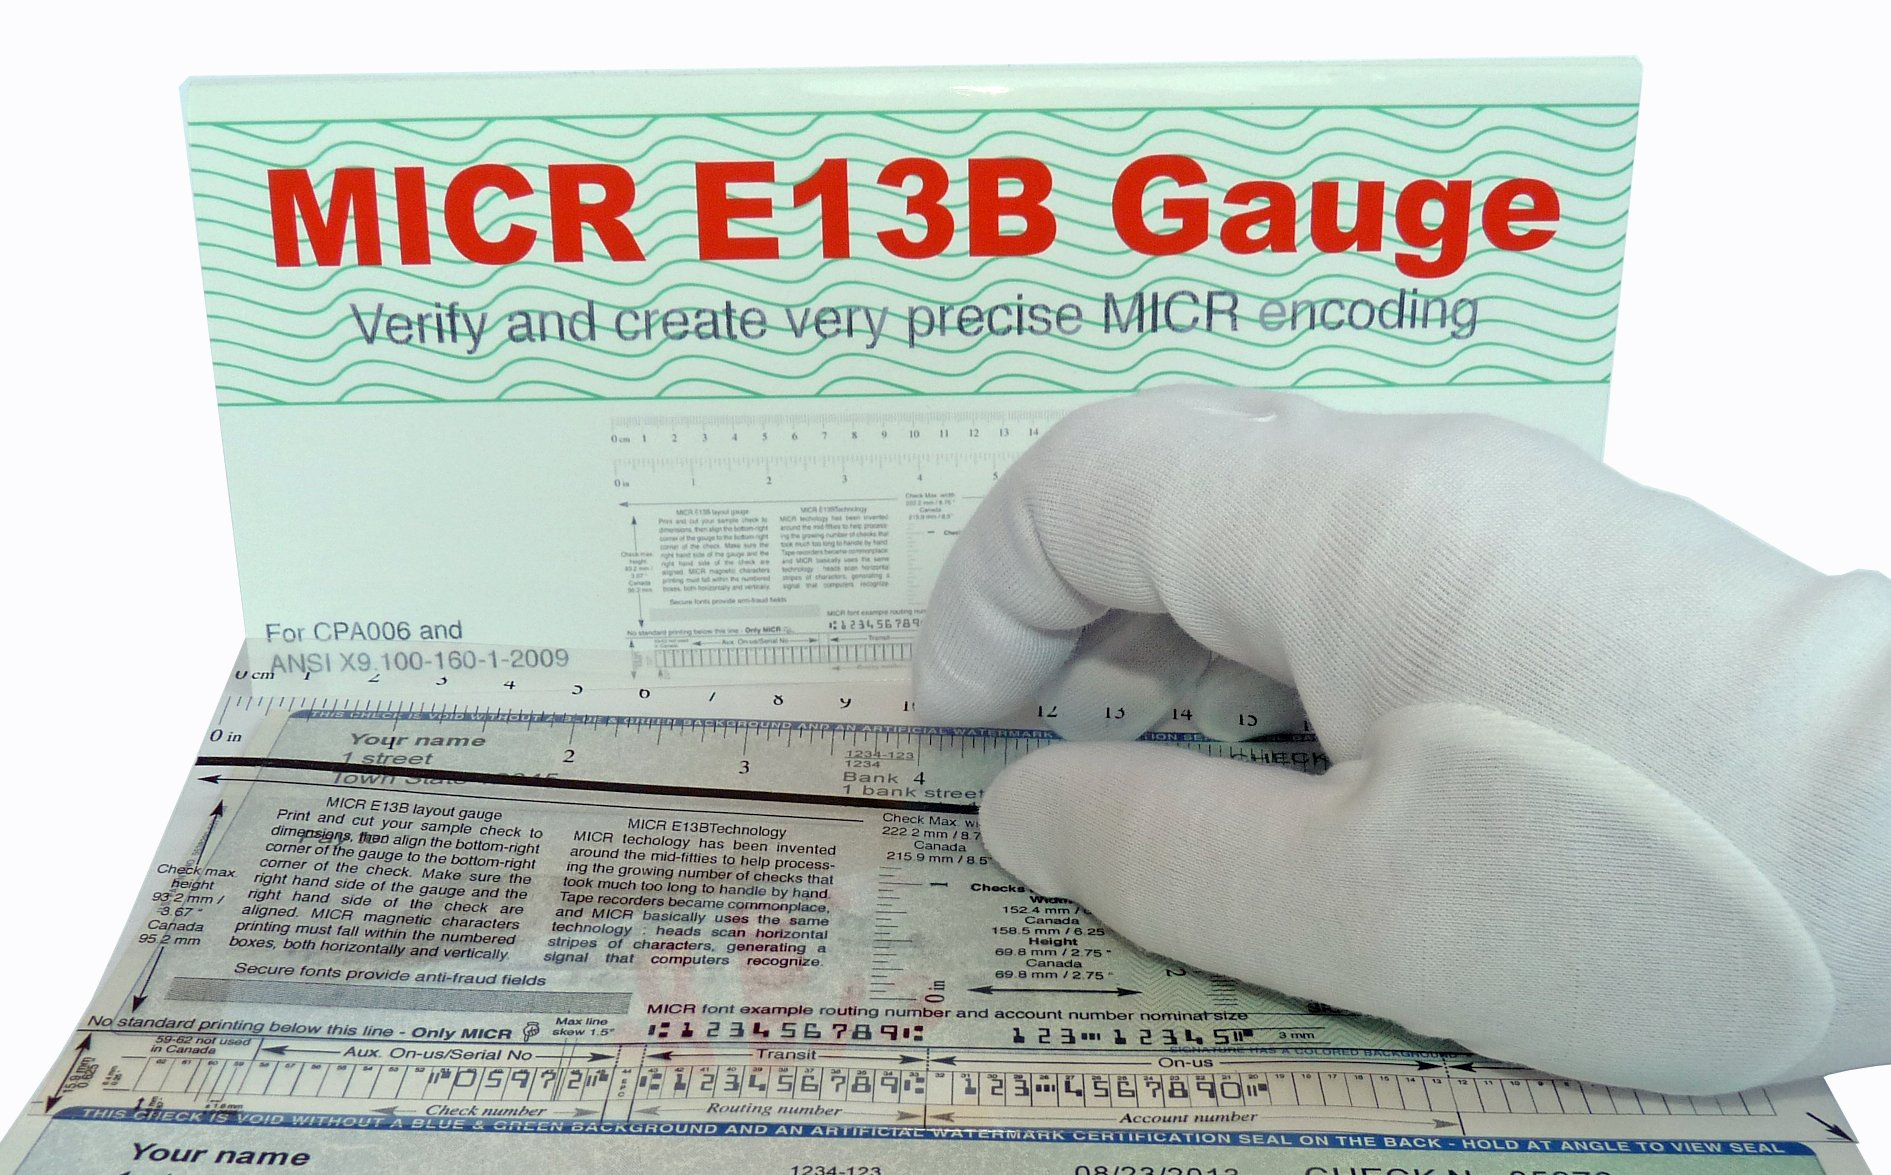 MICR Check Position Gauge Film PLUS : Precise and convenient E13B MICR Gauge for all types of checks, cut, rolls or 3 per page.